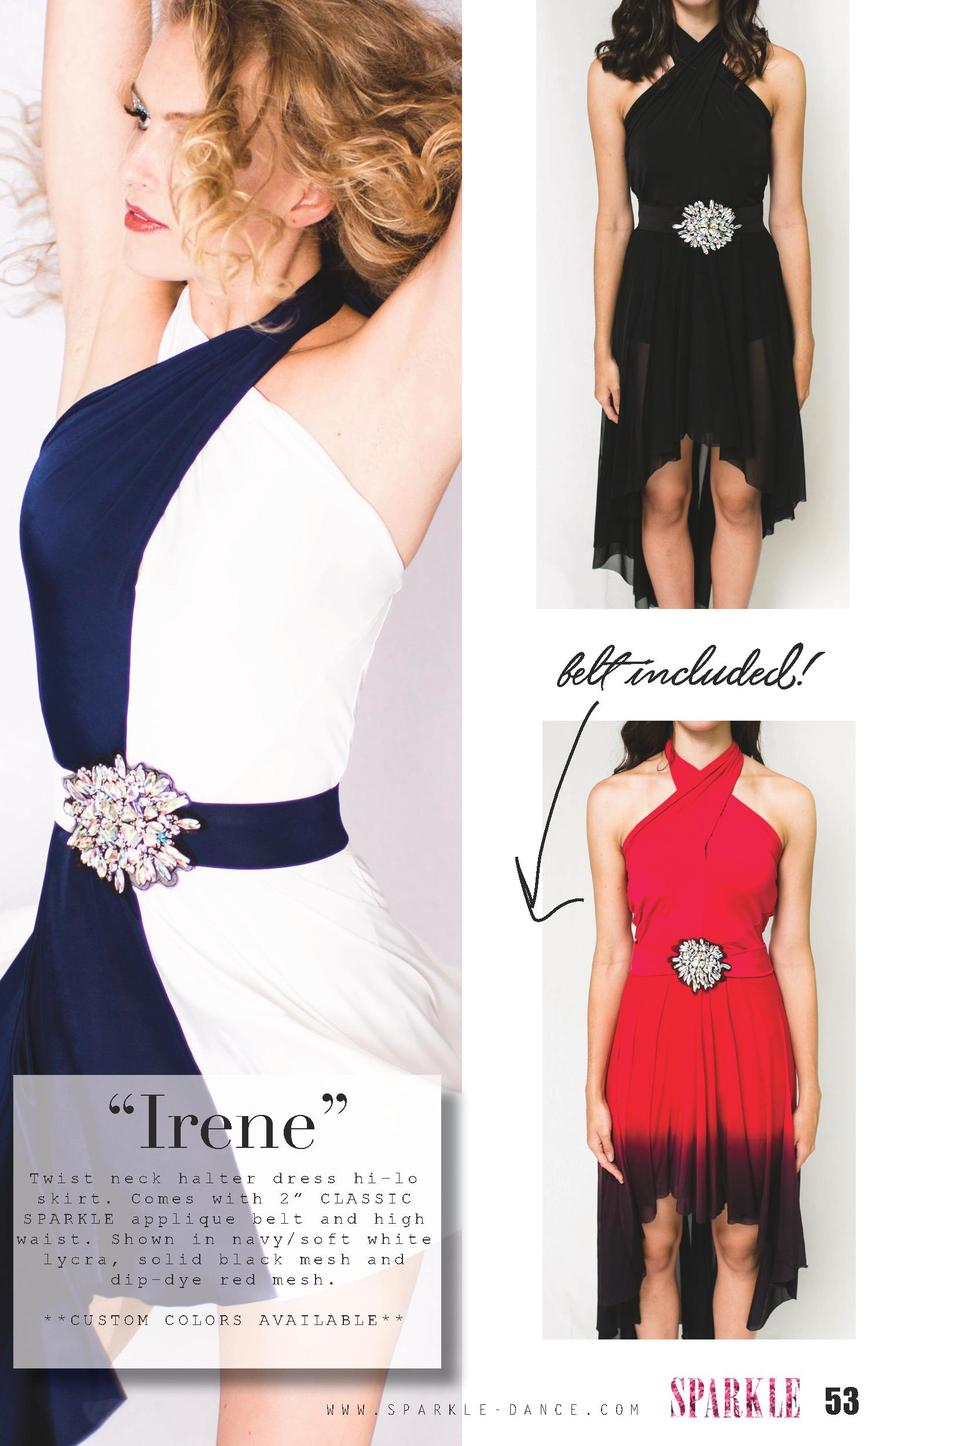 belt included      Irene     Twist neck halter dress hi-lo skirt. Comes with 2    CLASSIC SPARKLE applique belt and high w...